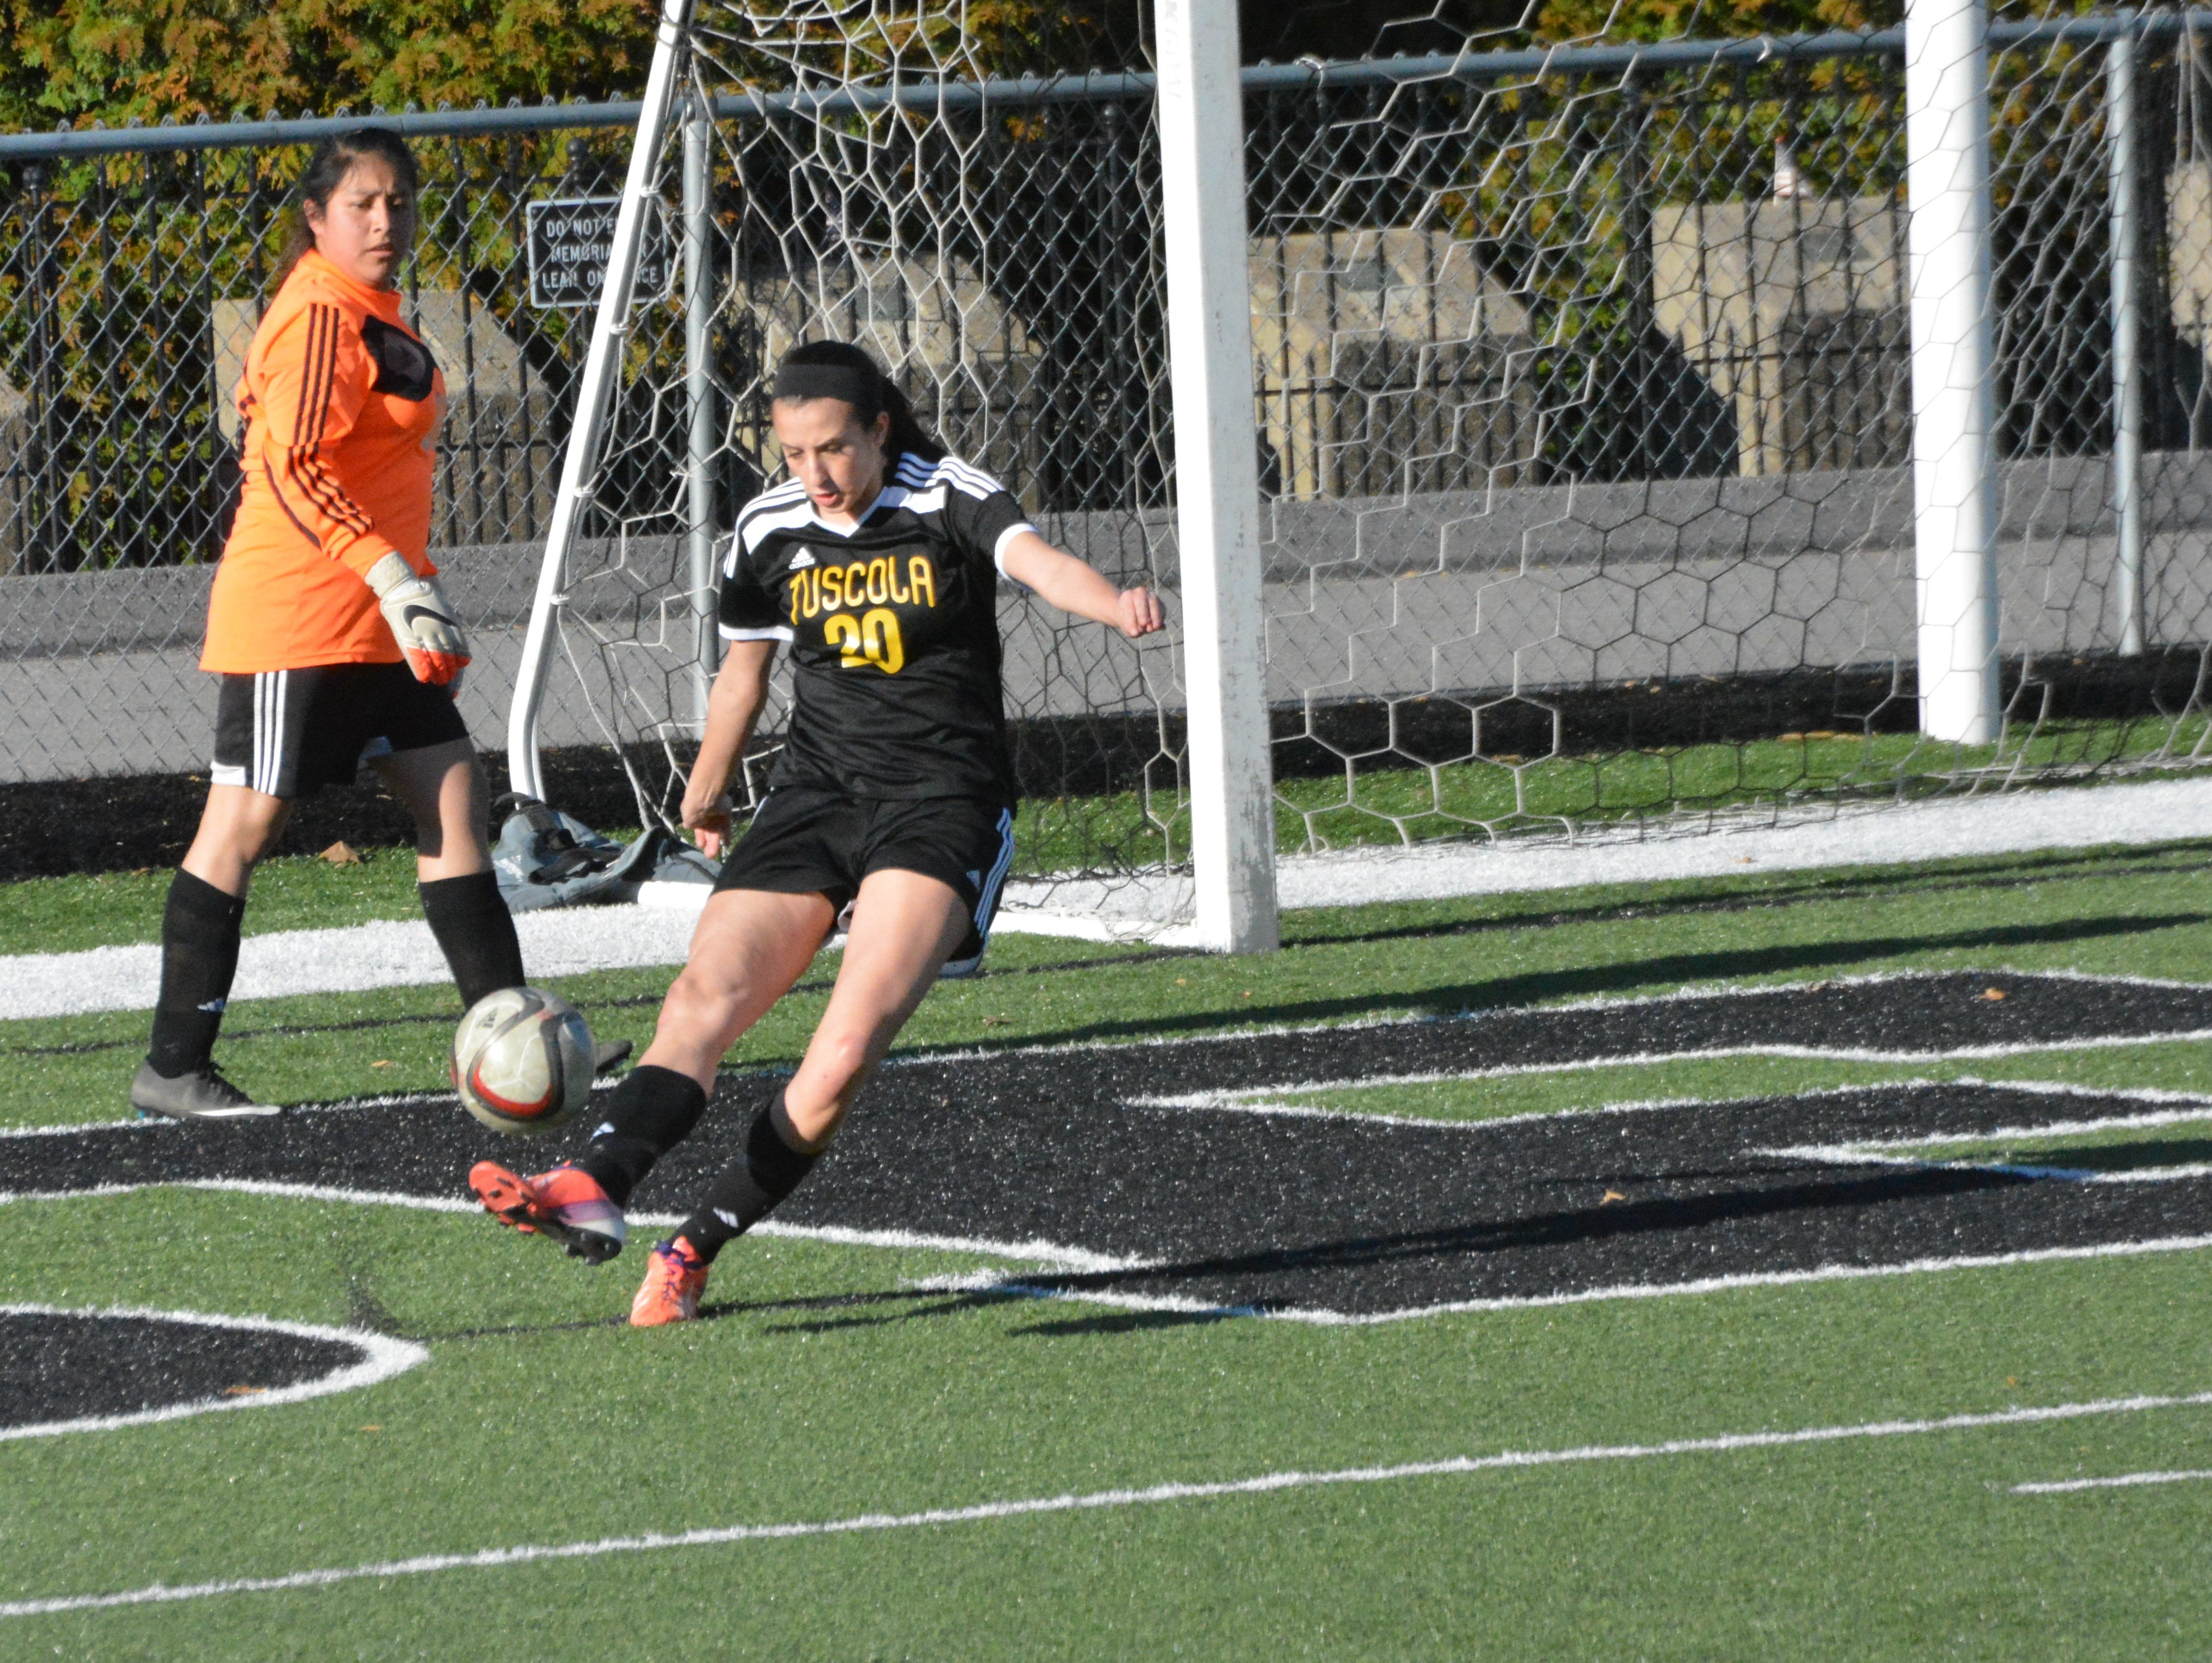 Tuscola's soccer team is 6-0 in the Western North Carolina Athletic Conference after Wednesday.